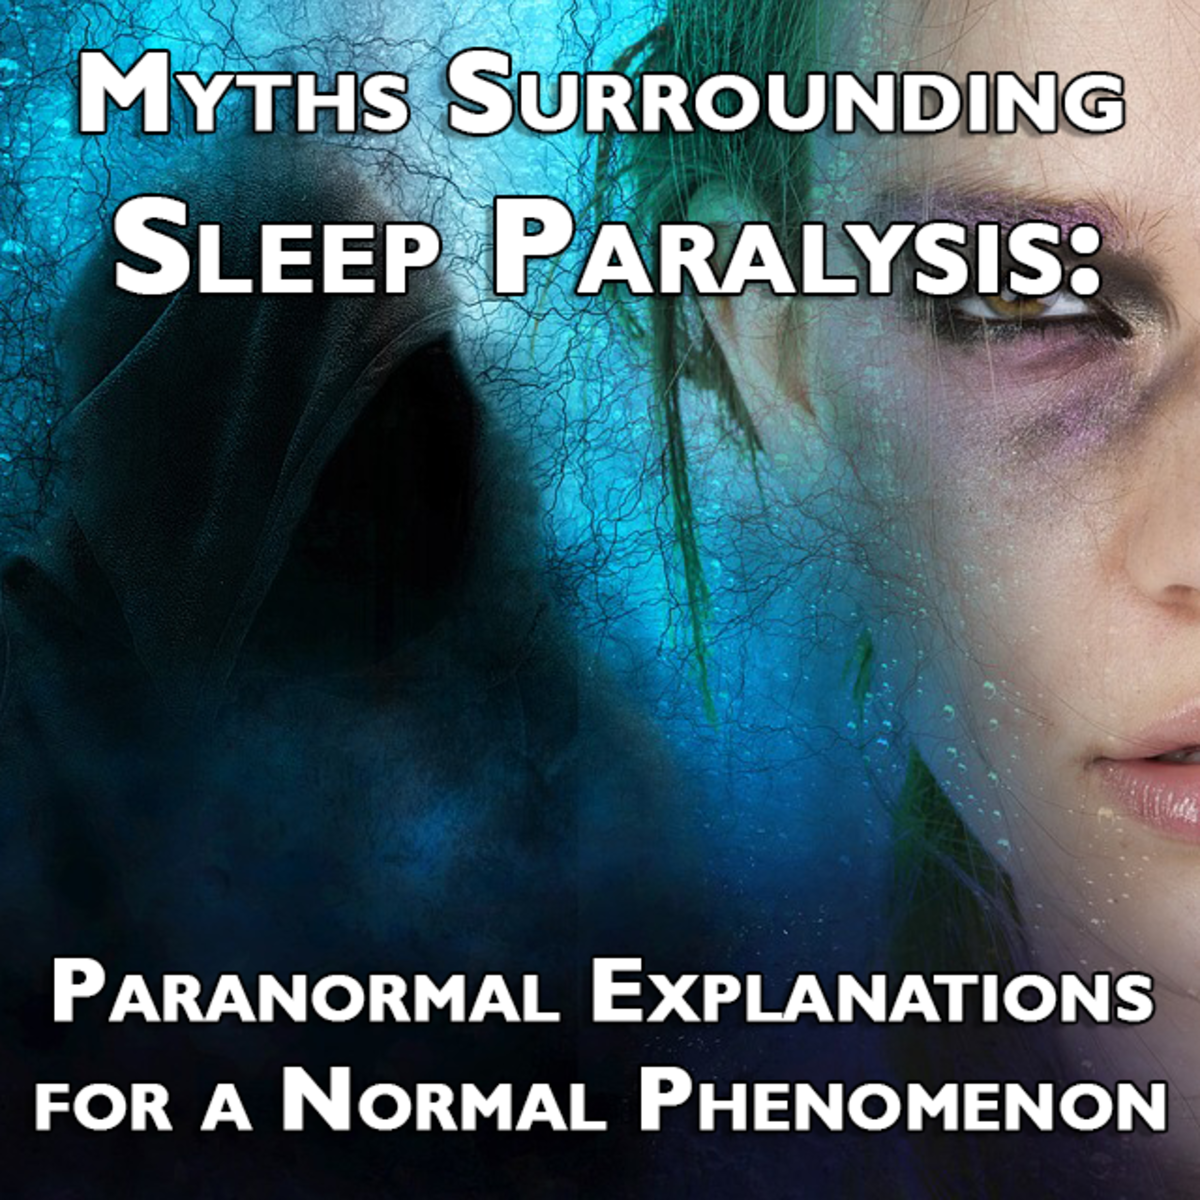 Myths Surrounding Sleep Paralysis: Paranormal Explanations for a Normal Phenomenon